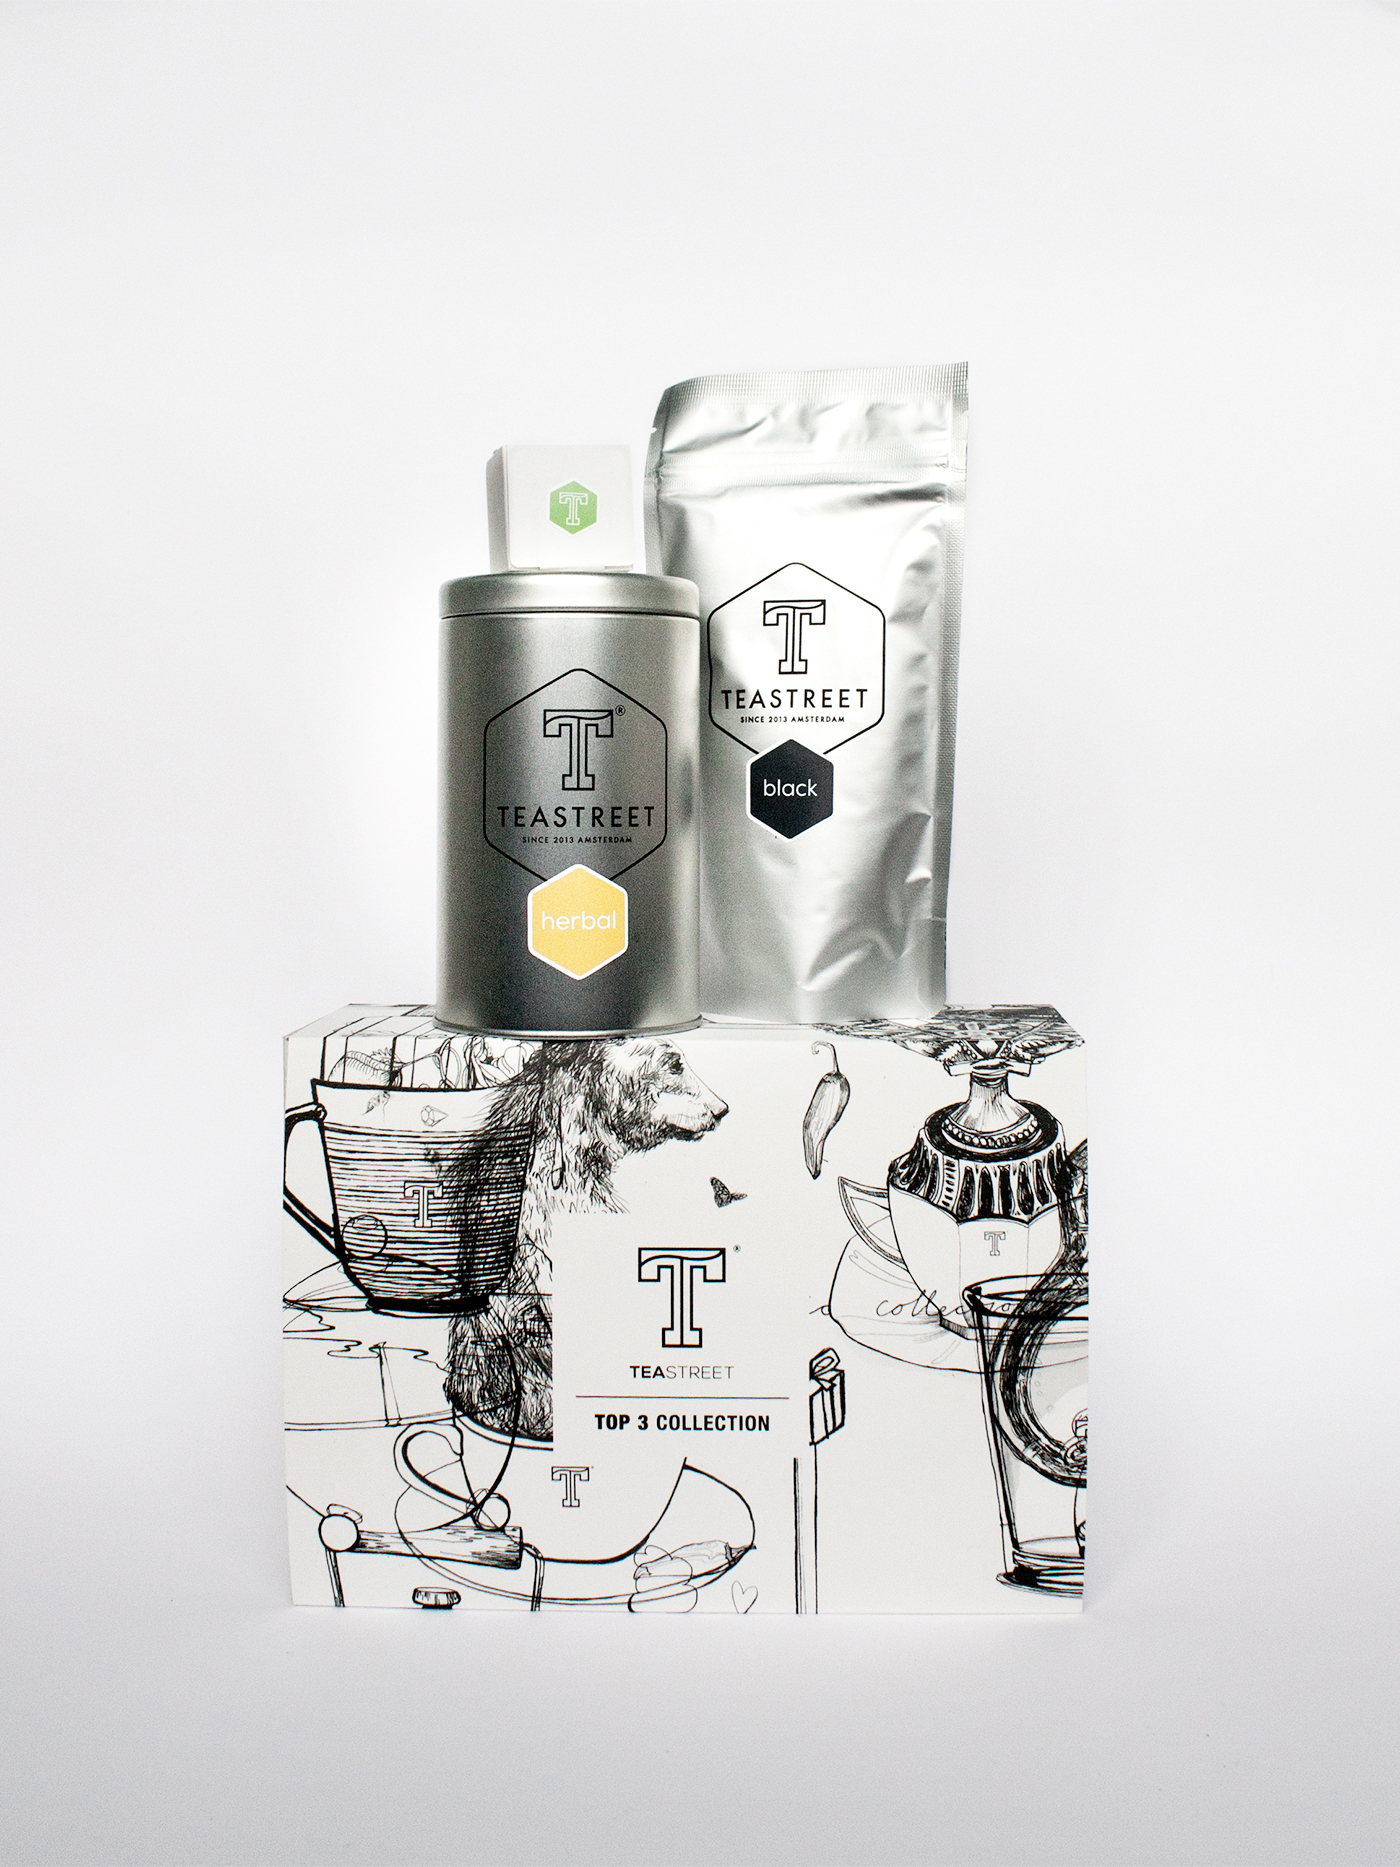 fig. 1. Packaging illustrations for the tea gift box